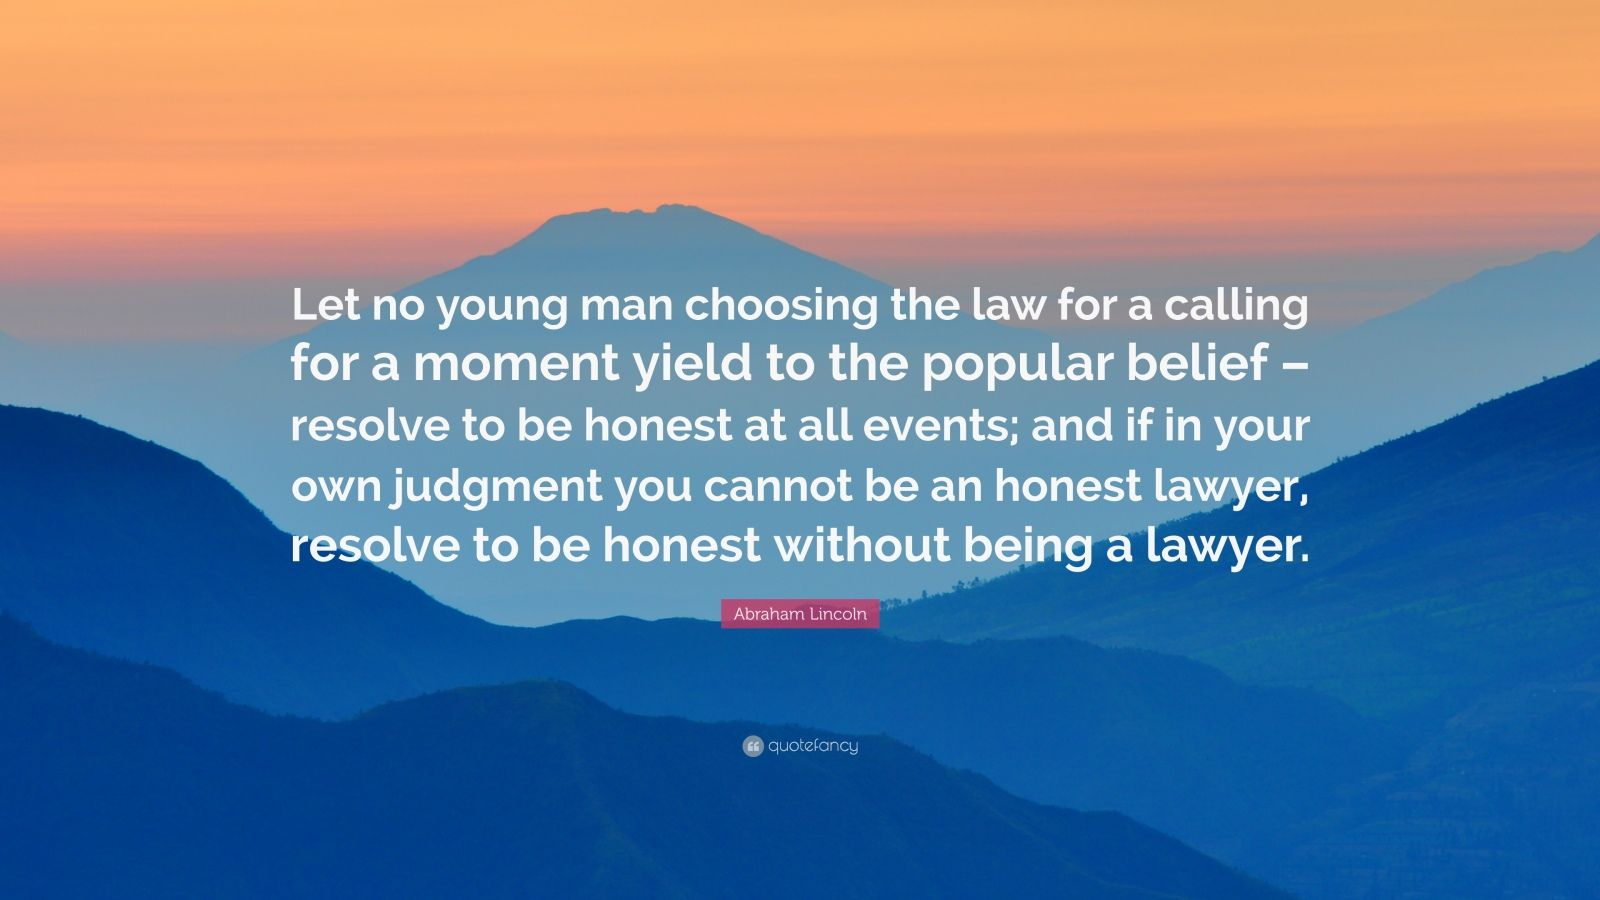 """Abraham Lincoln Quote: """"Let no young man choosing the law for a calling for a moment yield to the popular belief – resolve to be honest at all events; and if in your own judgment you cannot be an honest lawyer, resolve to be honest without being a lawyer."""""""